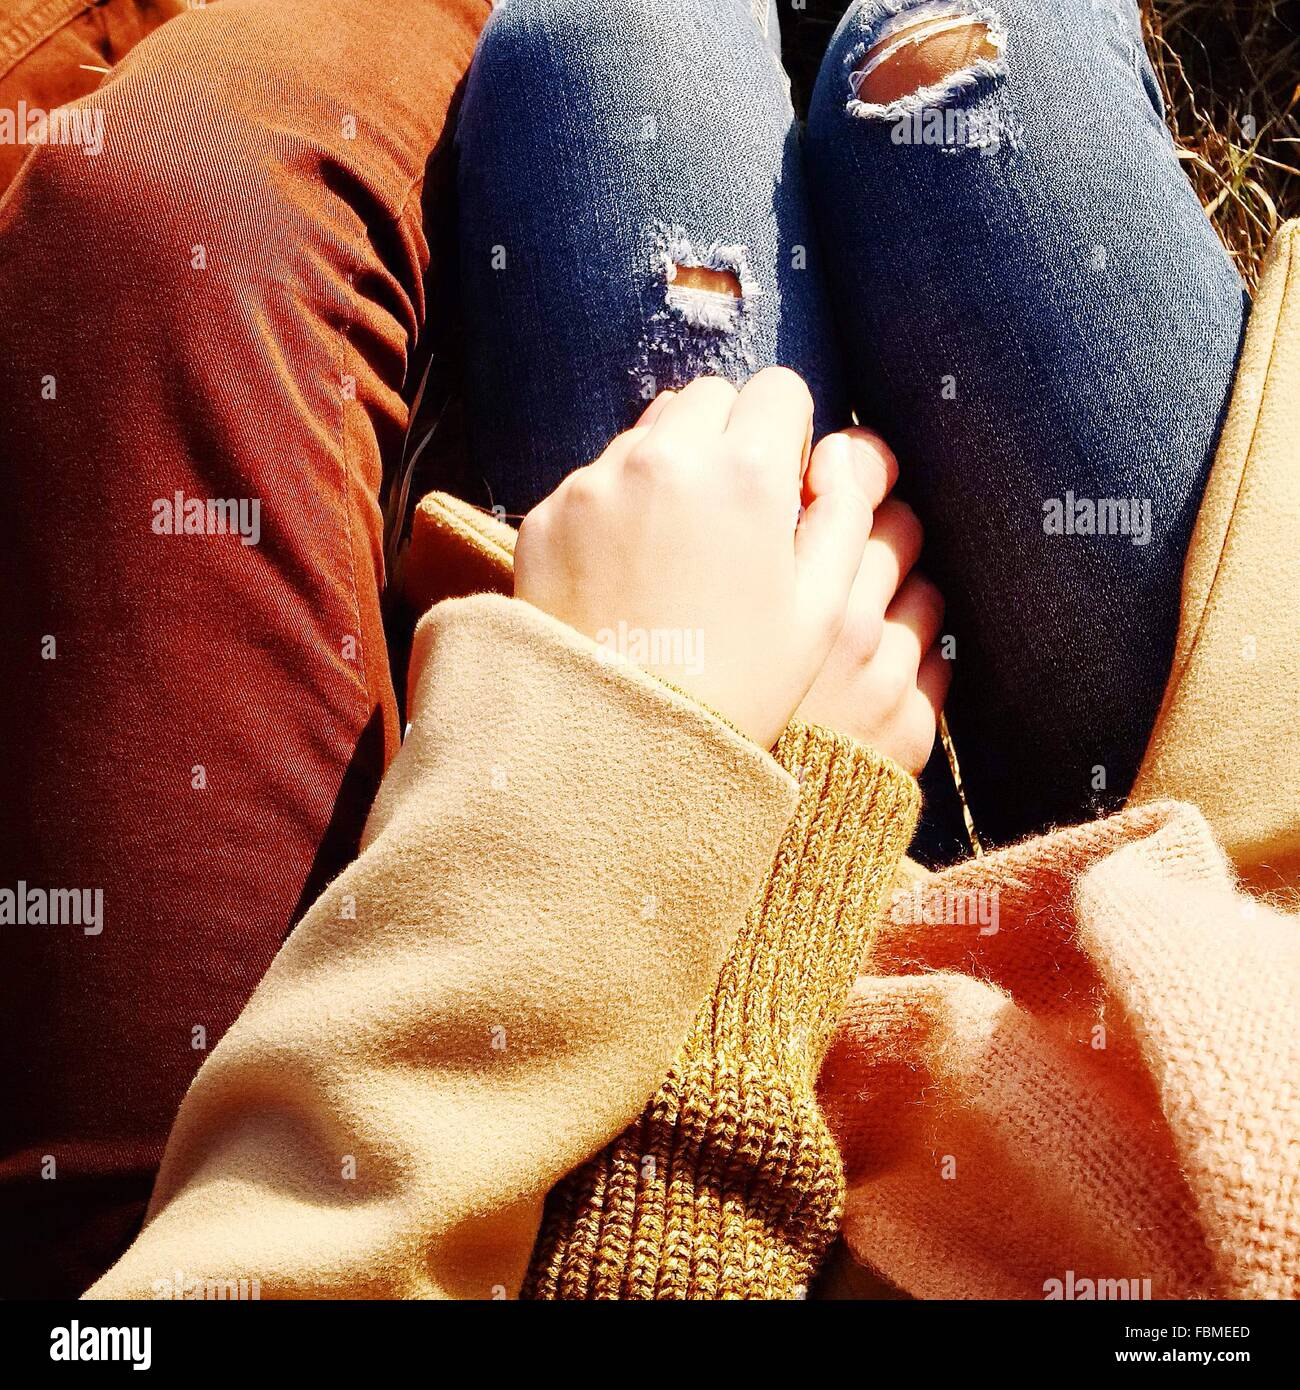 Close-up of a Couple holding hands - Stock Image